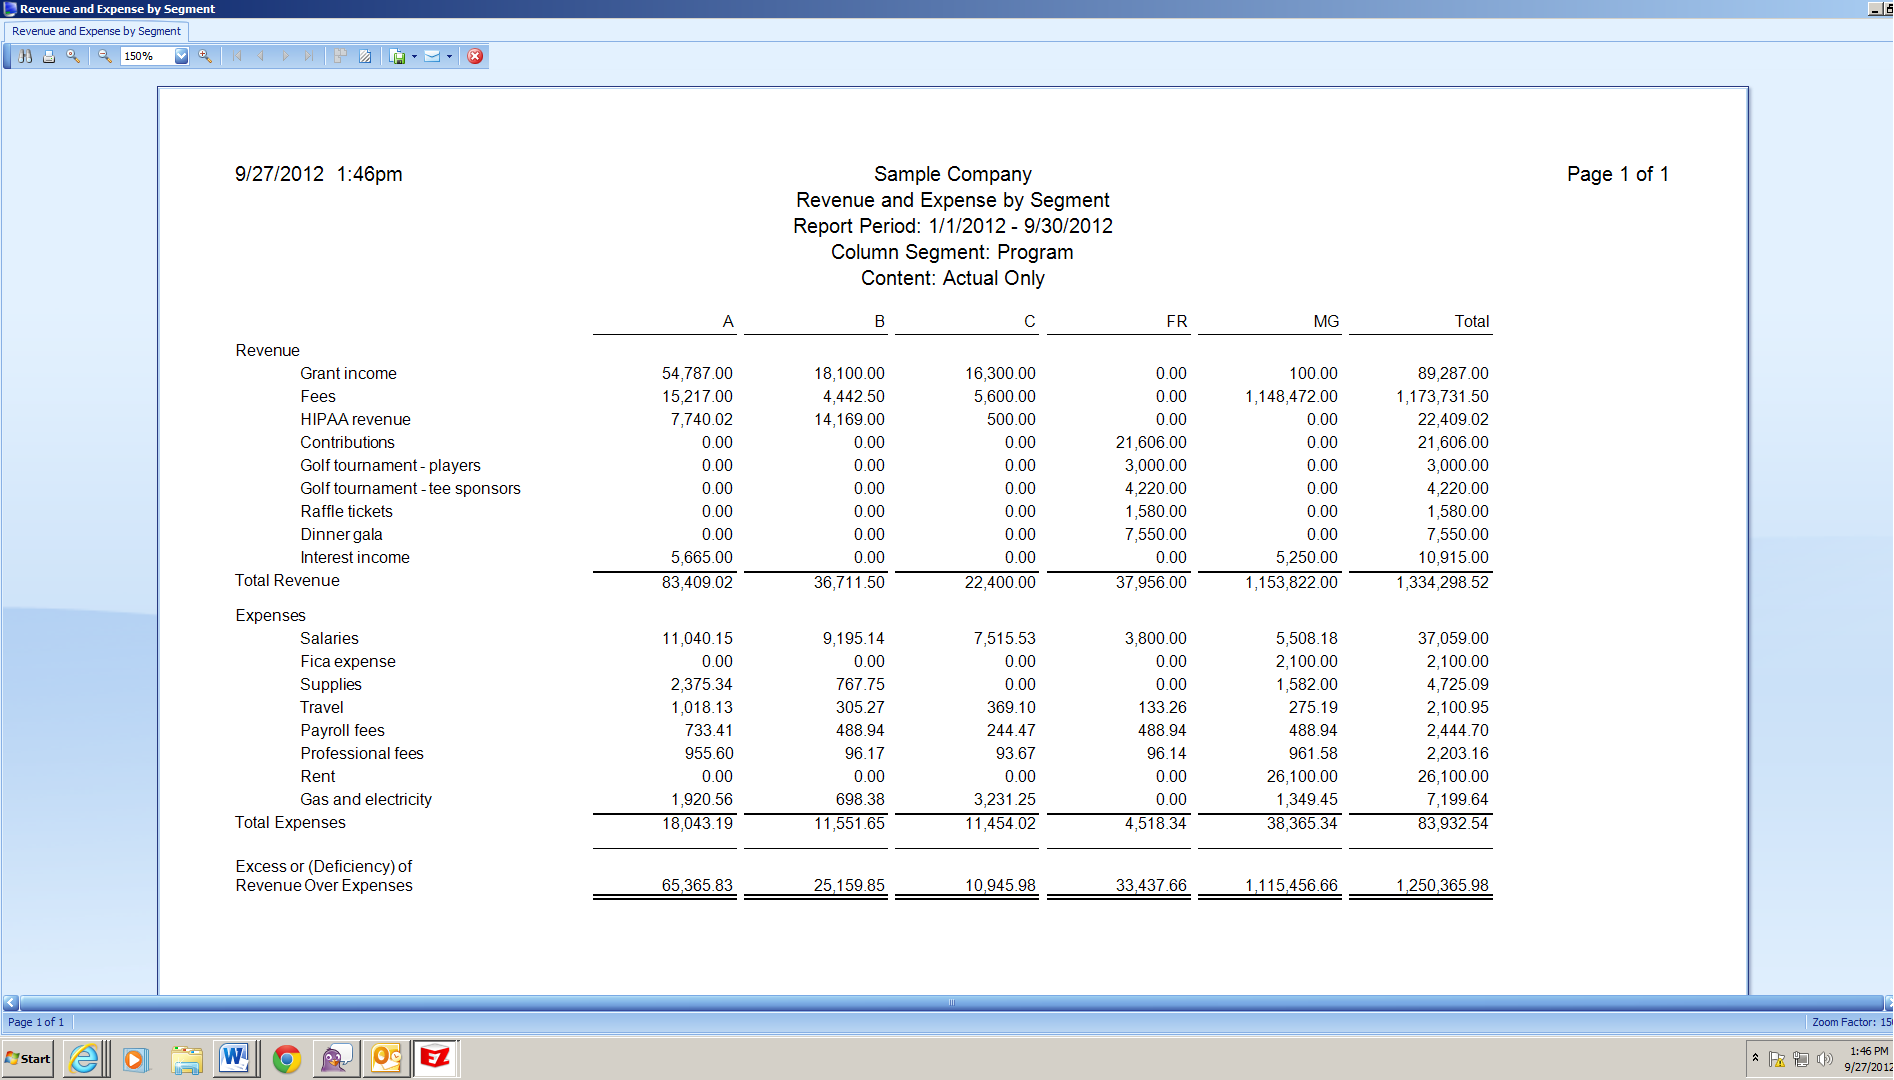 Revenue and expense by programs